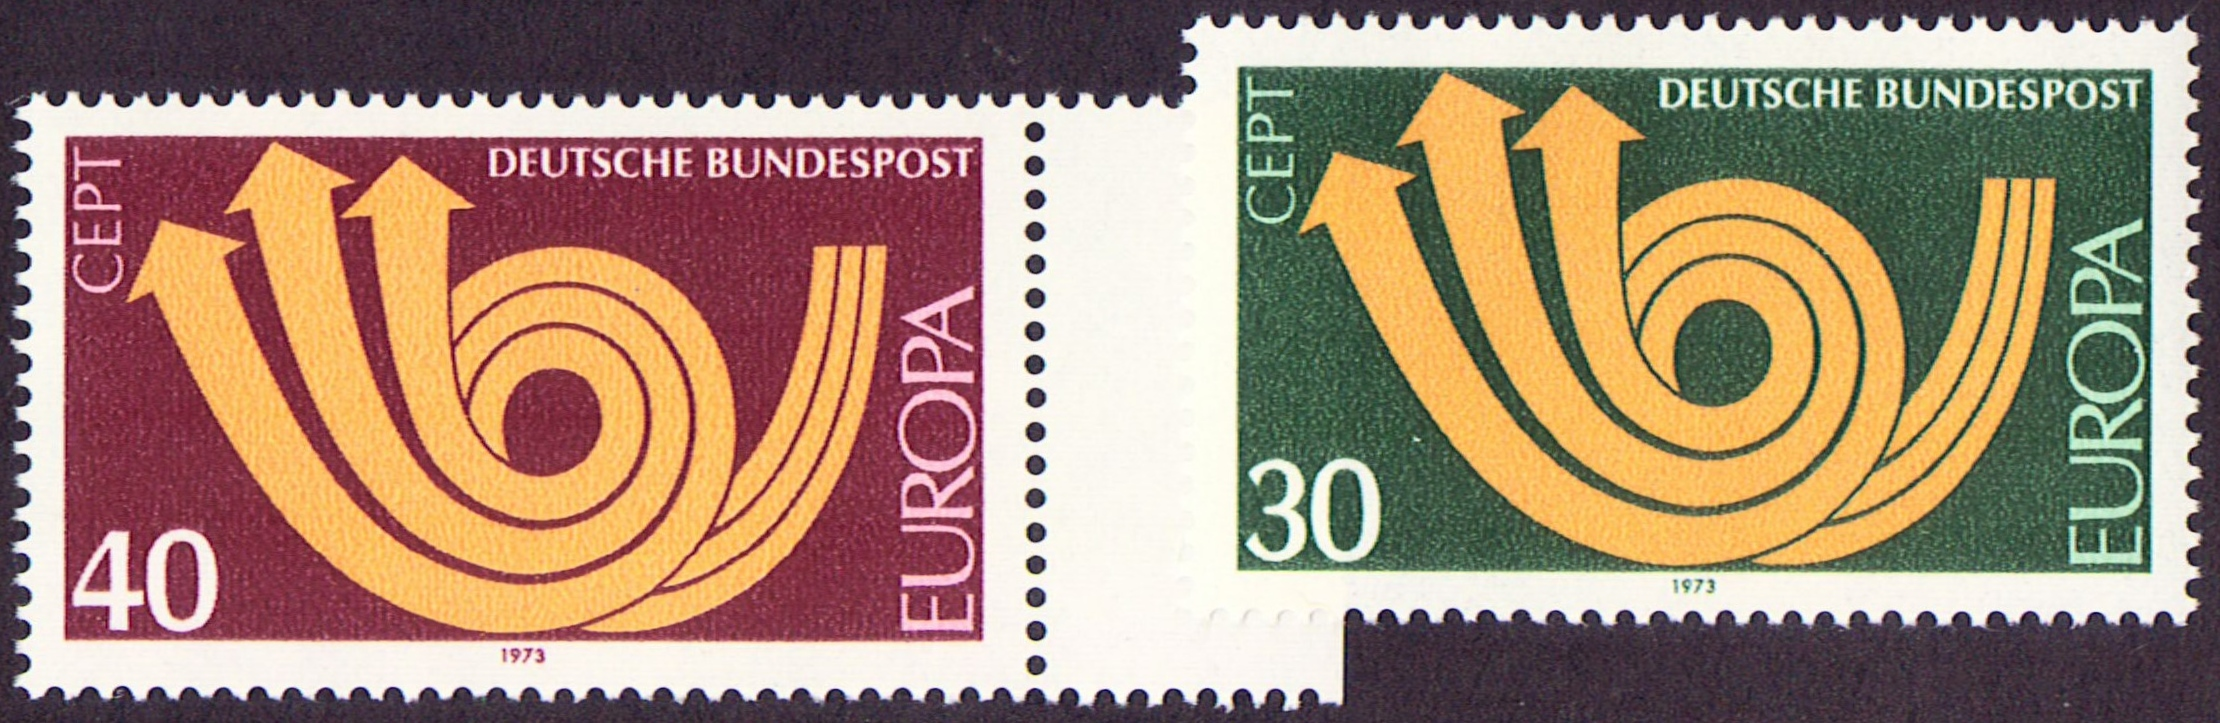 Germany Scott 1114-1115, MNH, Europa, 1973, a set of 2 stamps